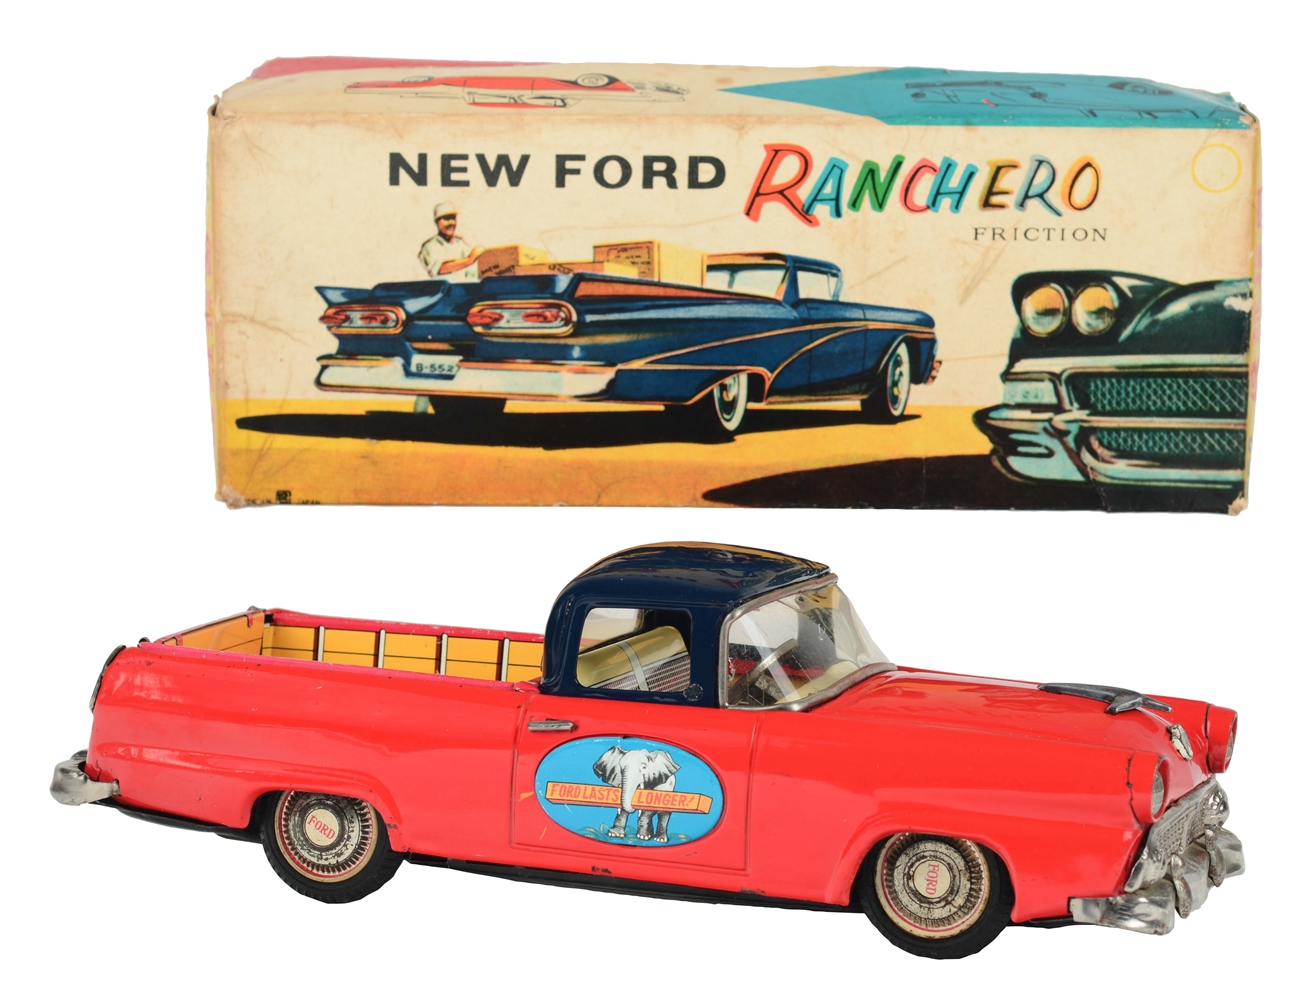 Tin Litho and Painted Friction Ford Ranchero.